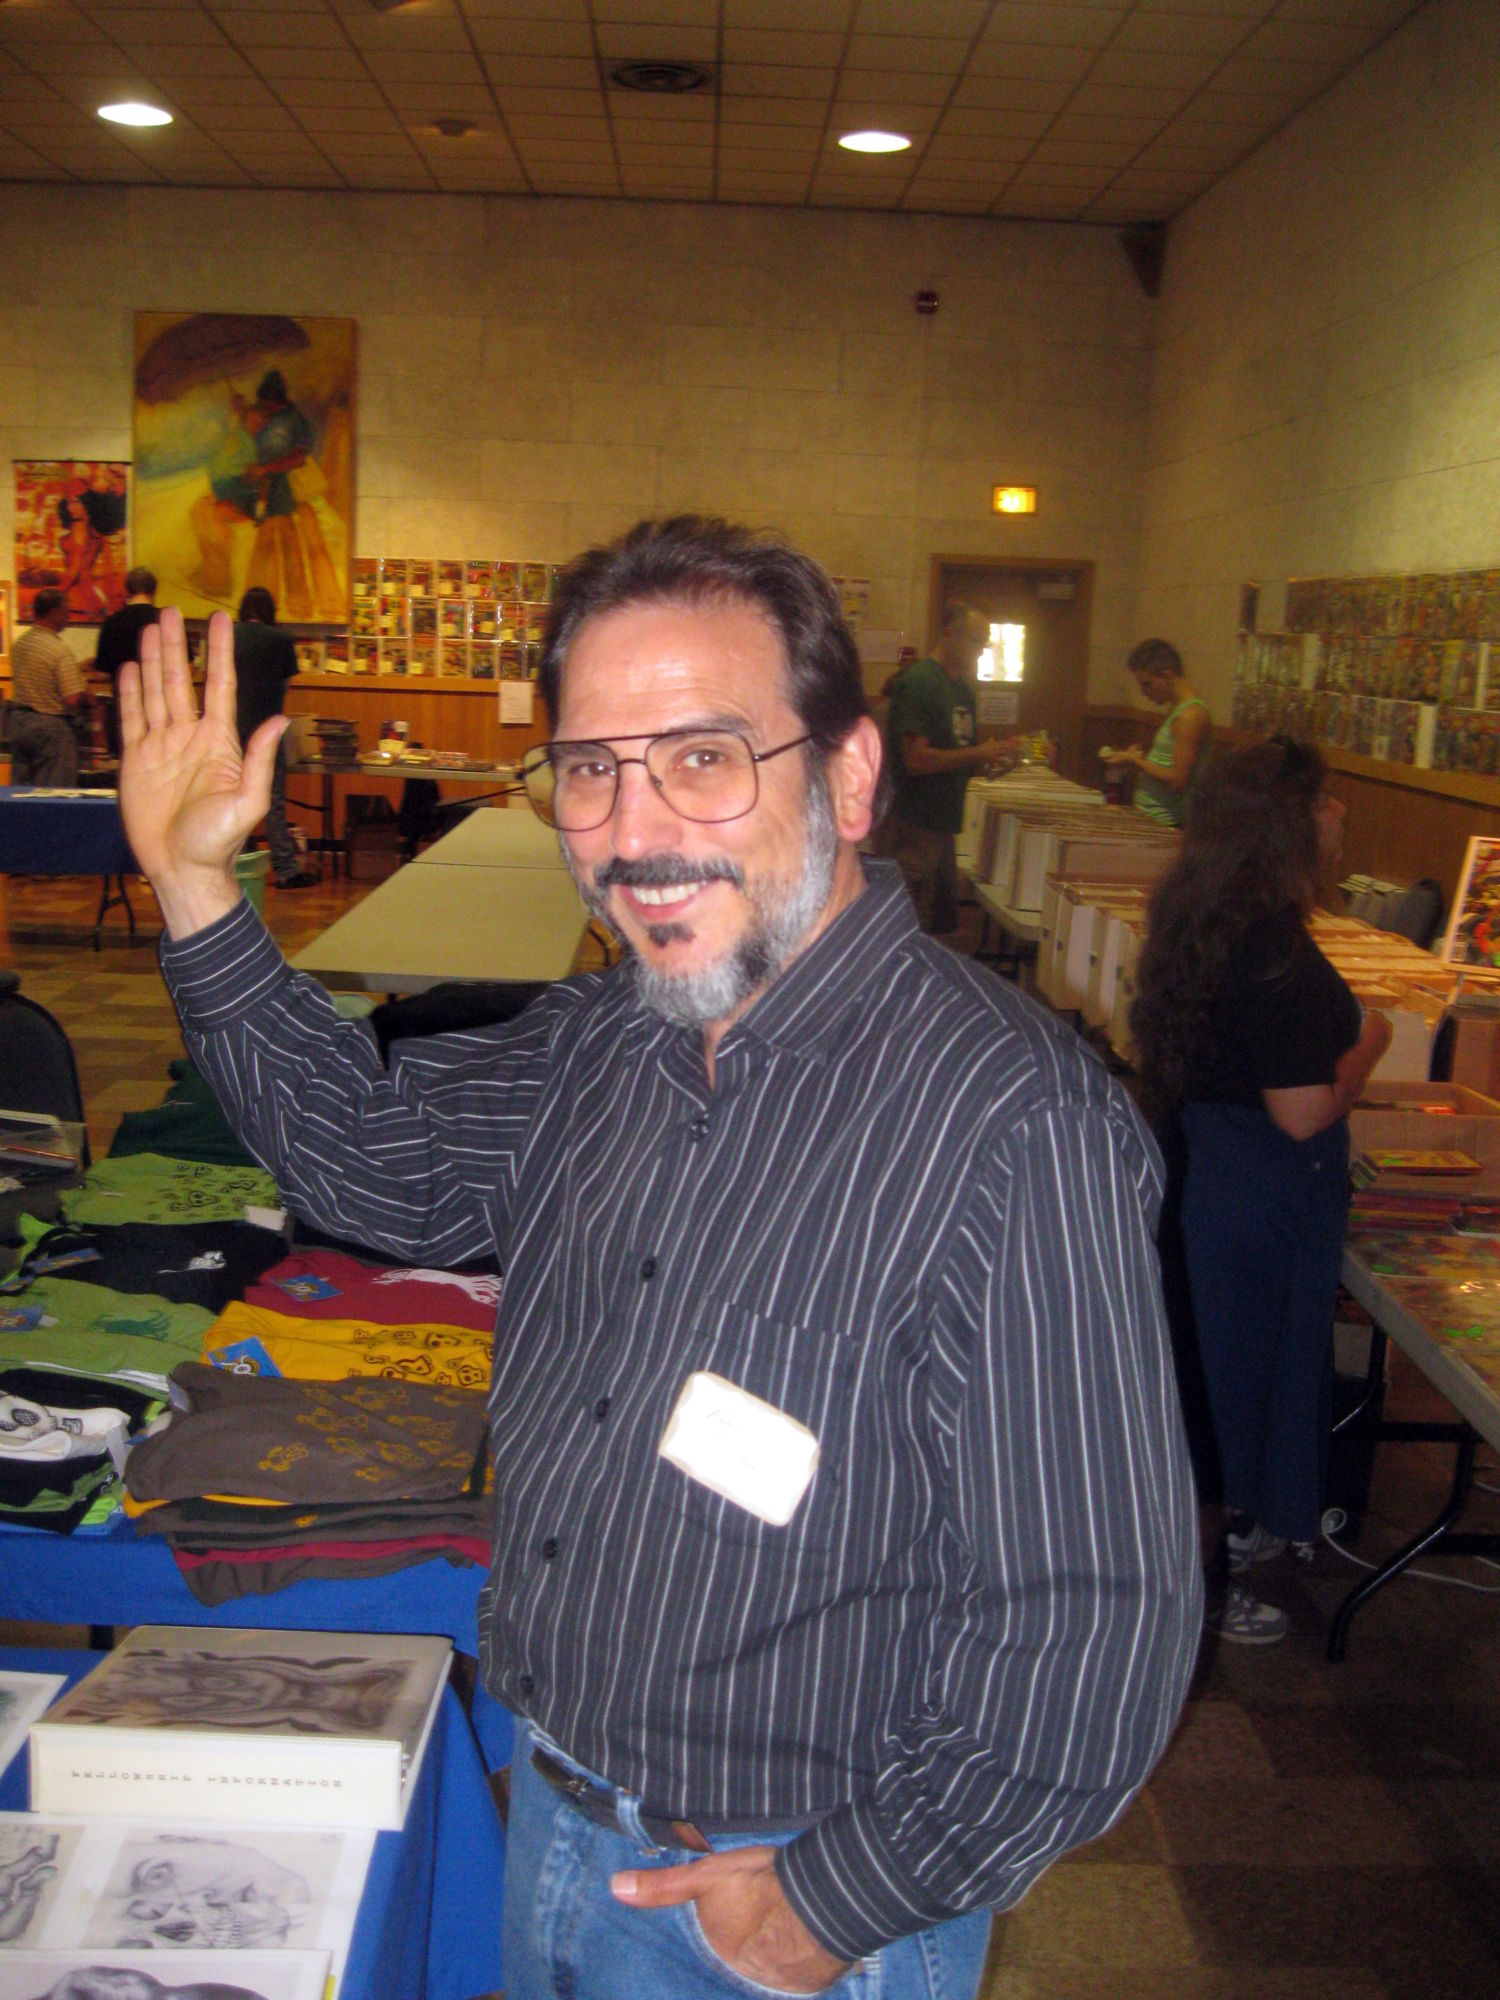 The Daily LITG – 17th September 2019, Happy Birthday Roger Stern